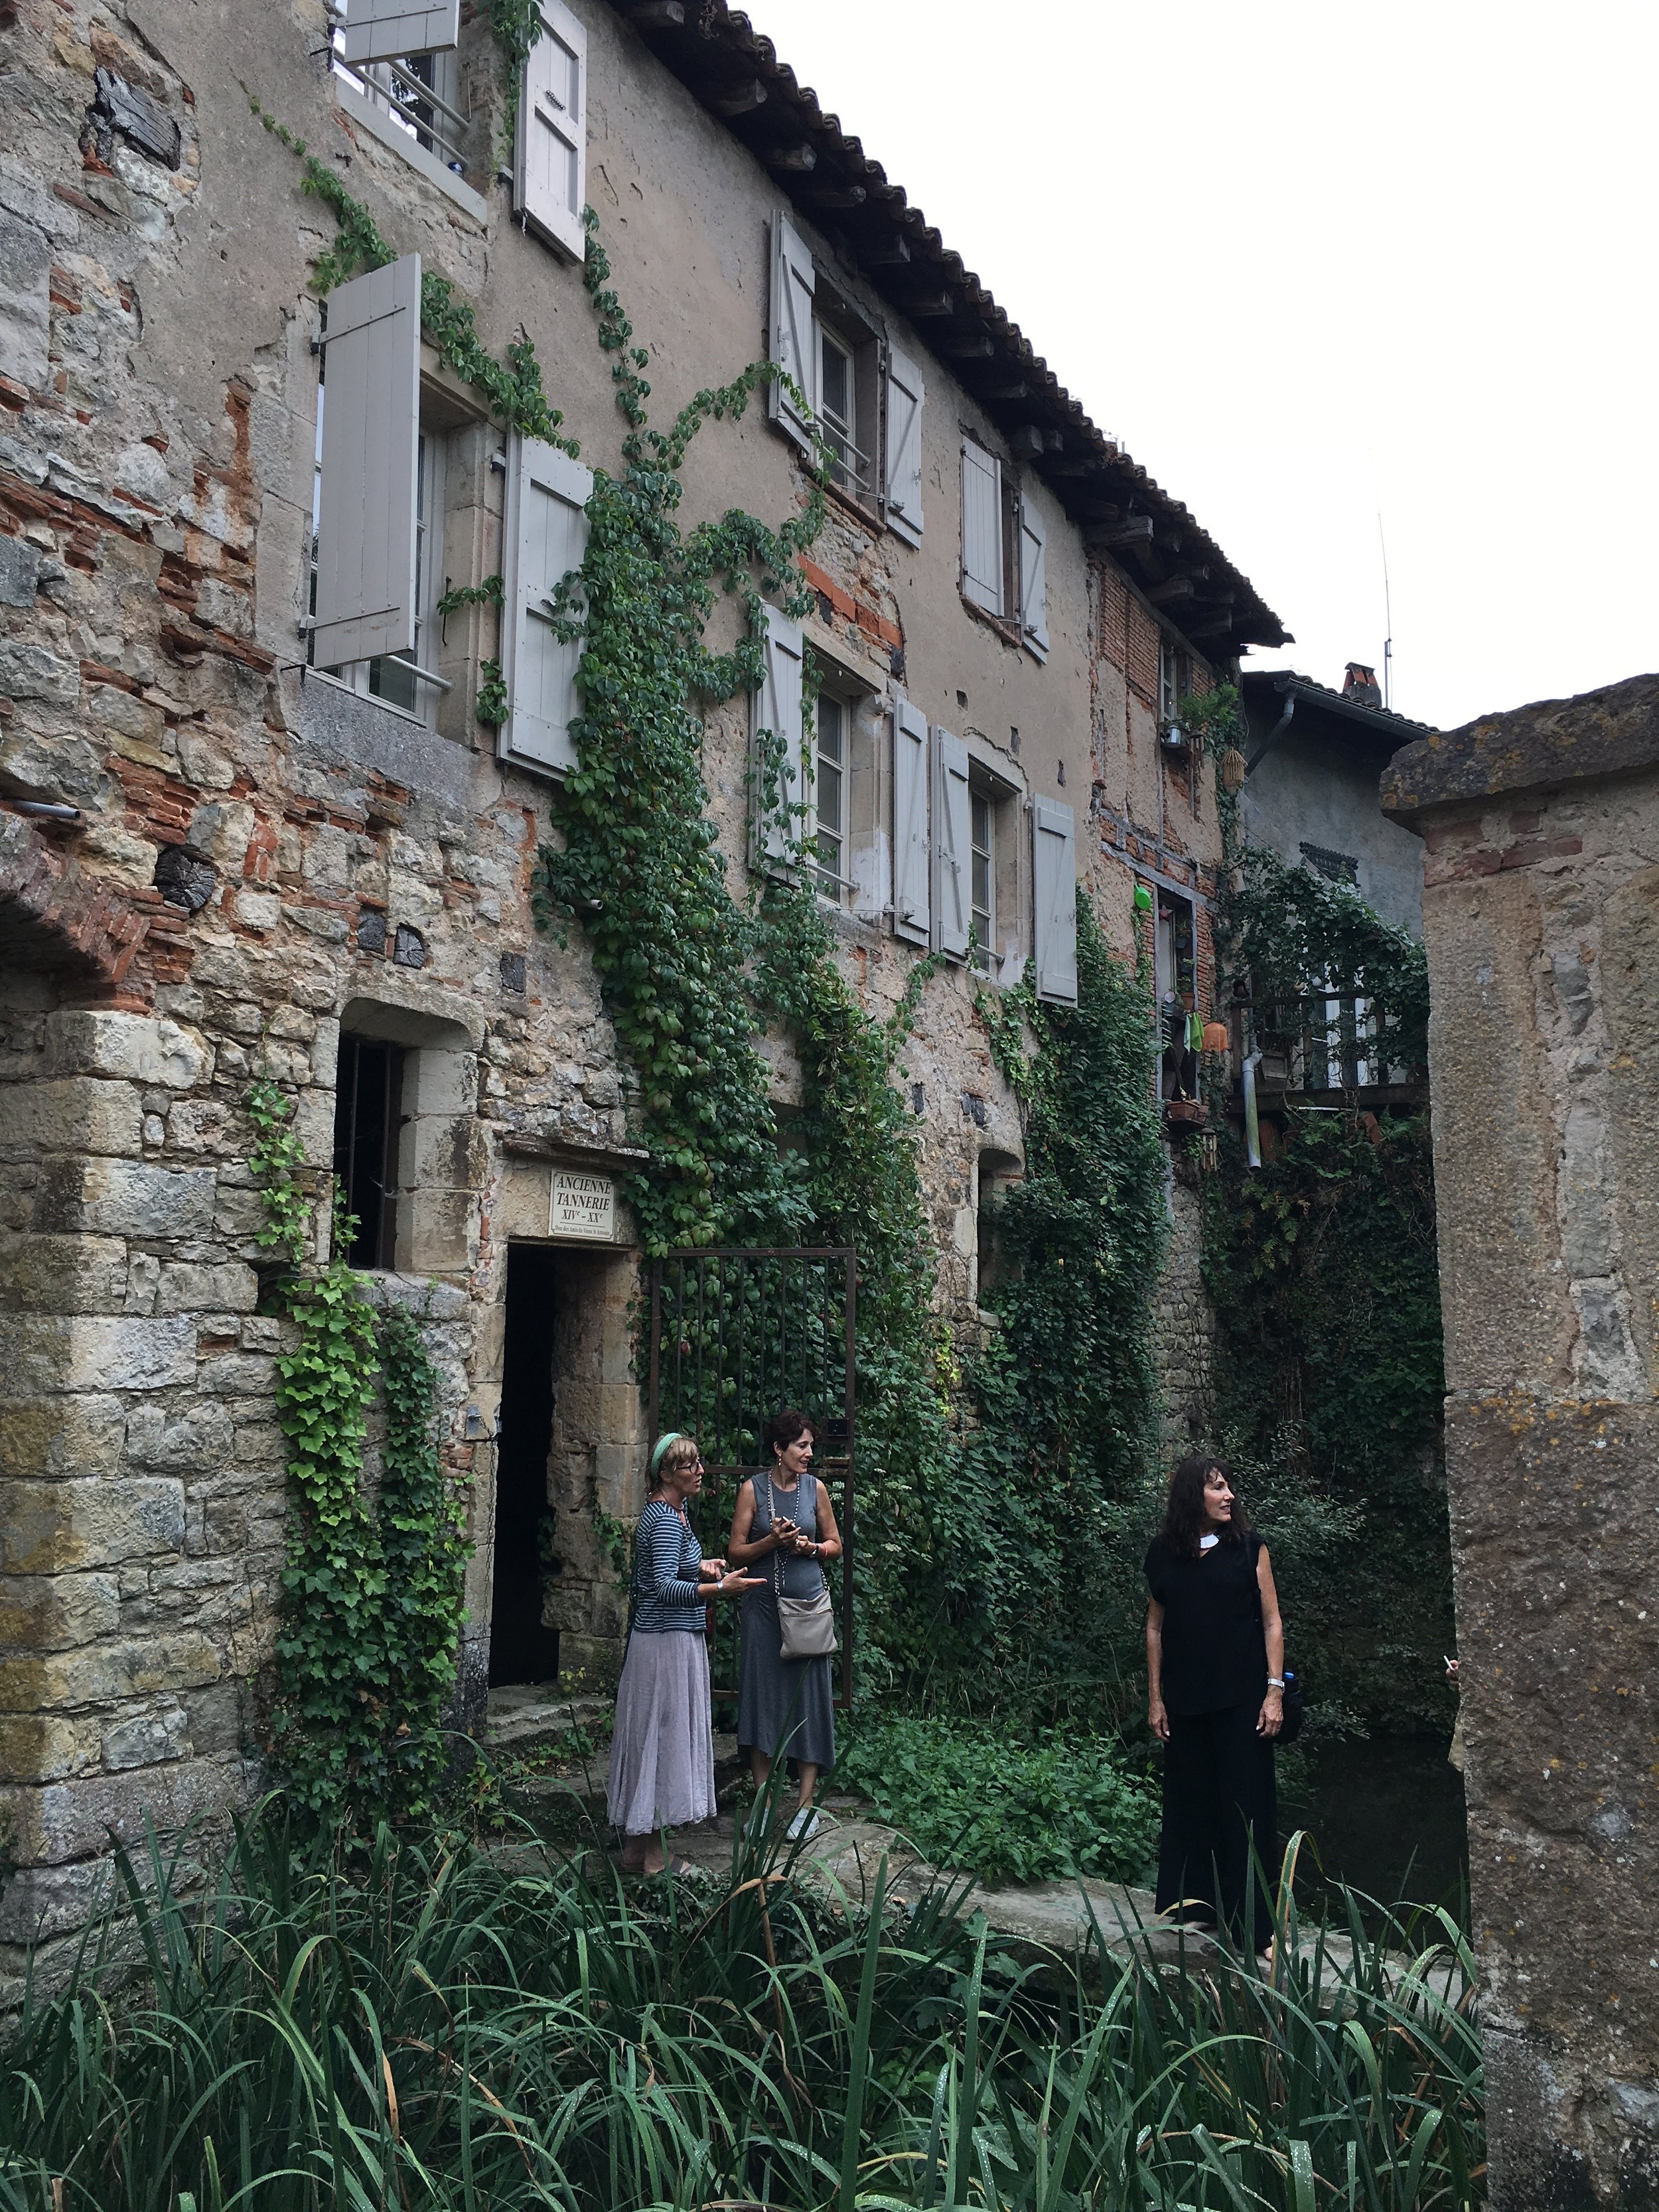 Chateau Dumas a French culinary group trip from Sonoma! Aunty, Toulouse, and Saint-Antonin-Noble-Val